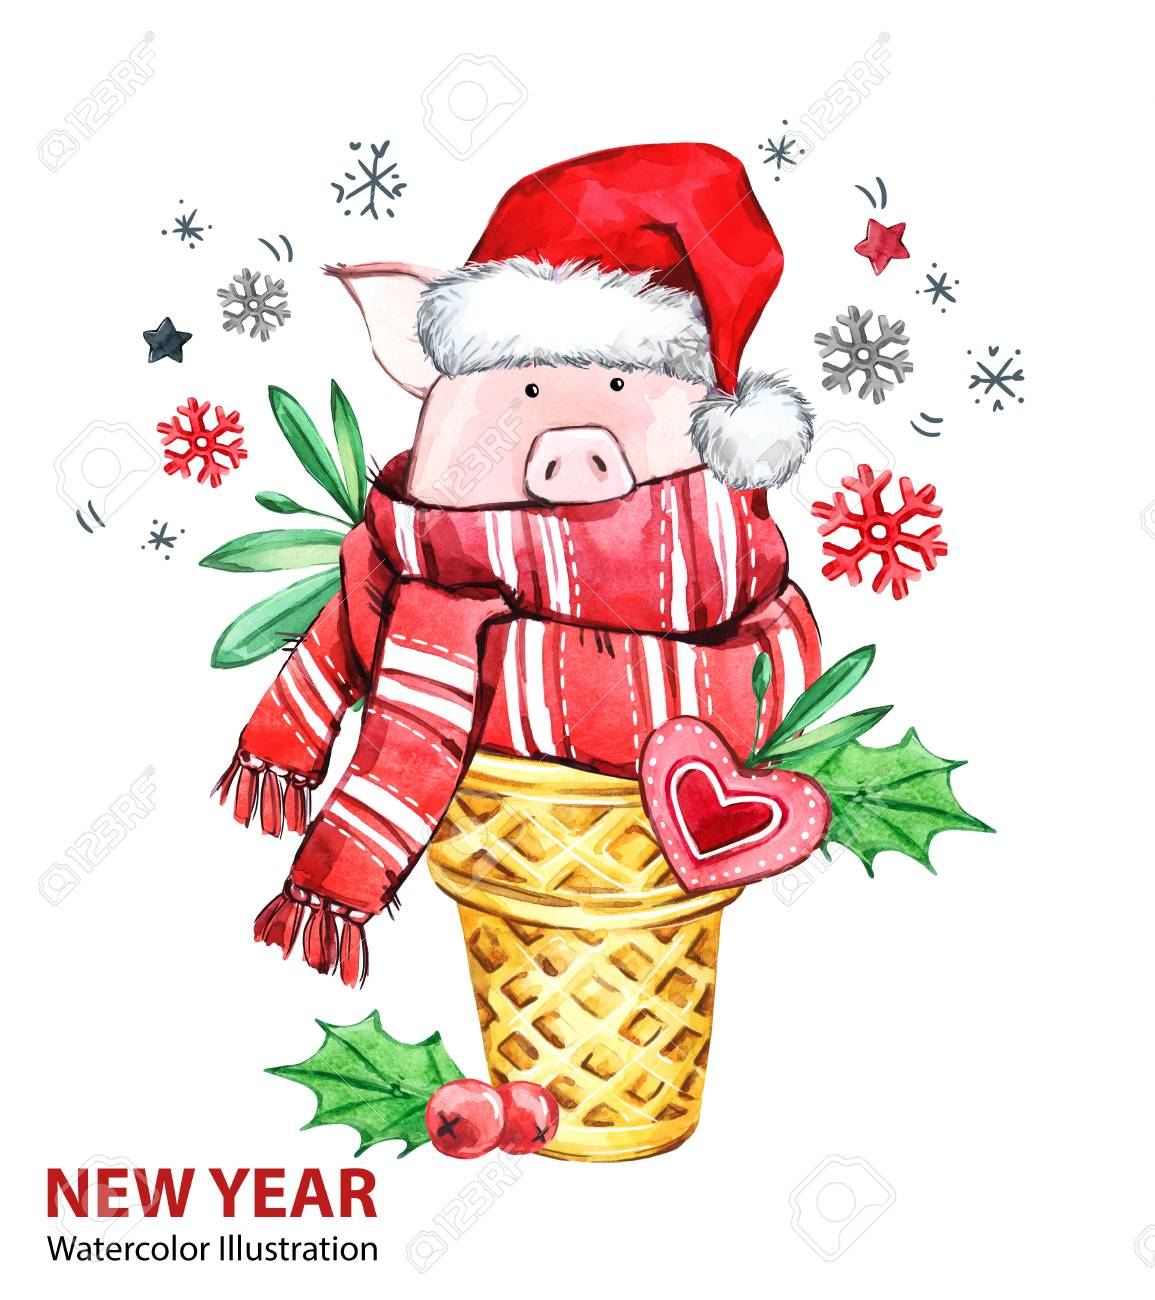 2019 happy new year illustration christmas cute pig with santa hat in waffle cone